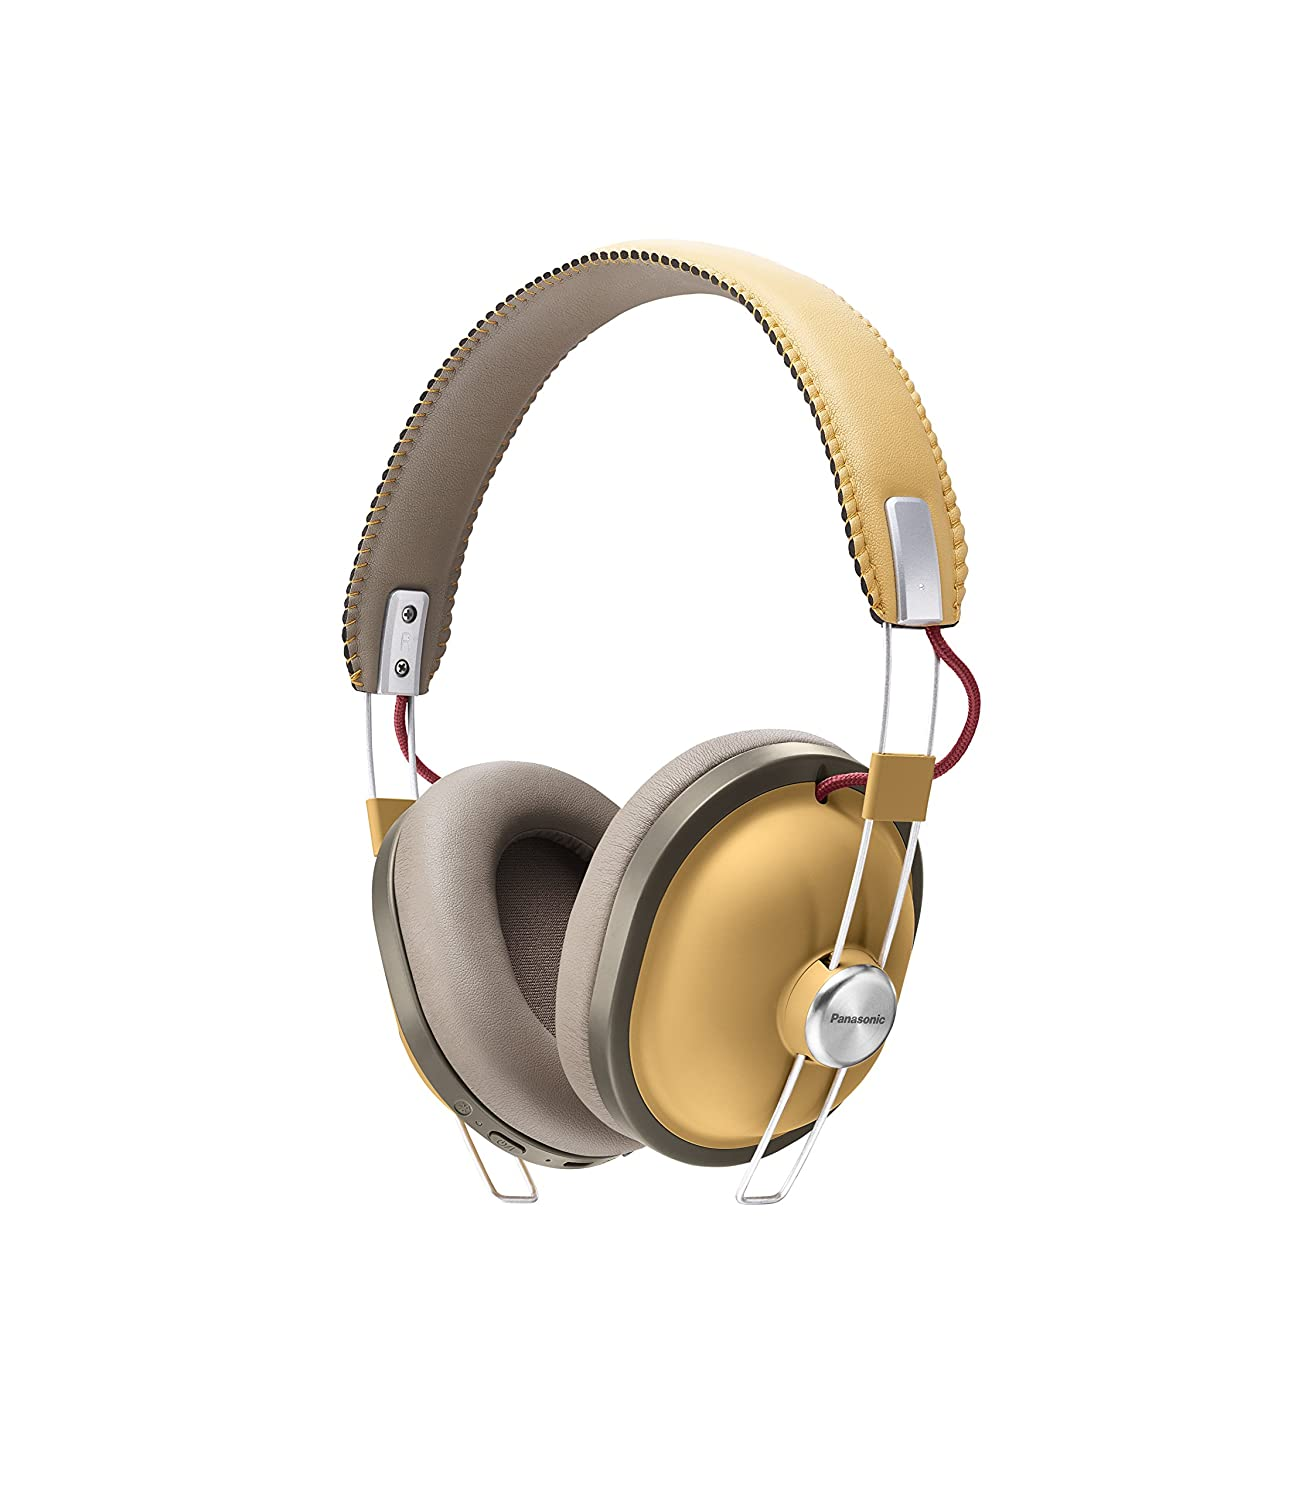 1120a2ddd72bd7 PANASONIC RP-HTX80BE-C Bluetooth Wireless Over-Ear: Amazon.co.uk:  Electronics